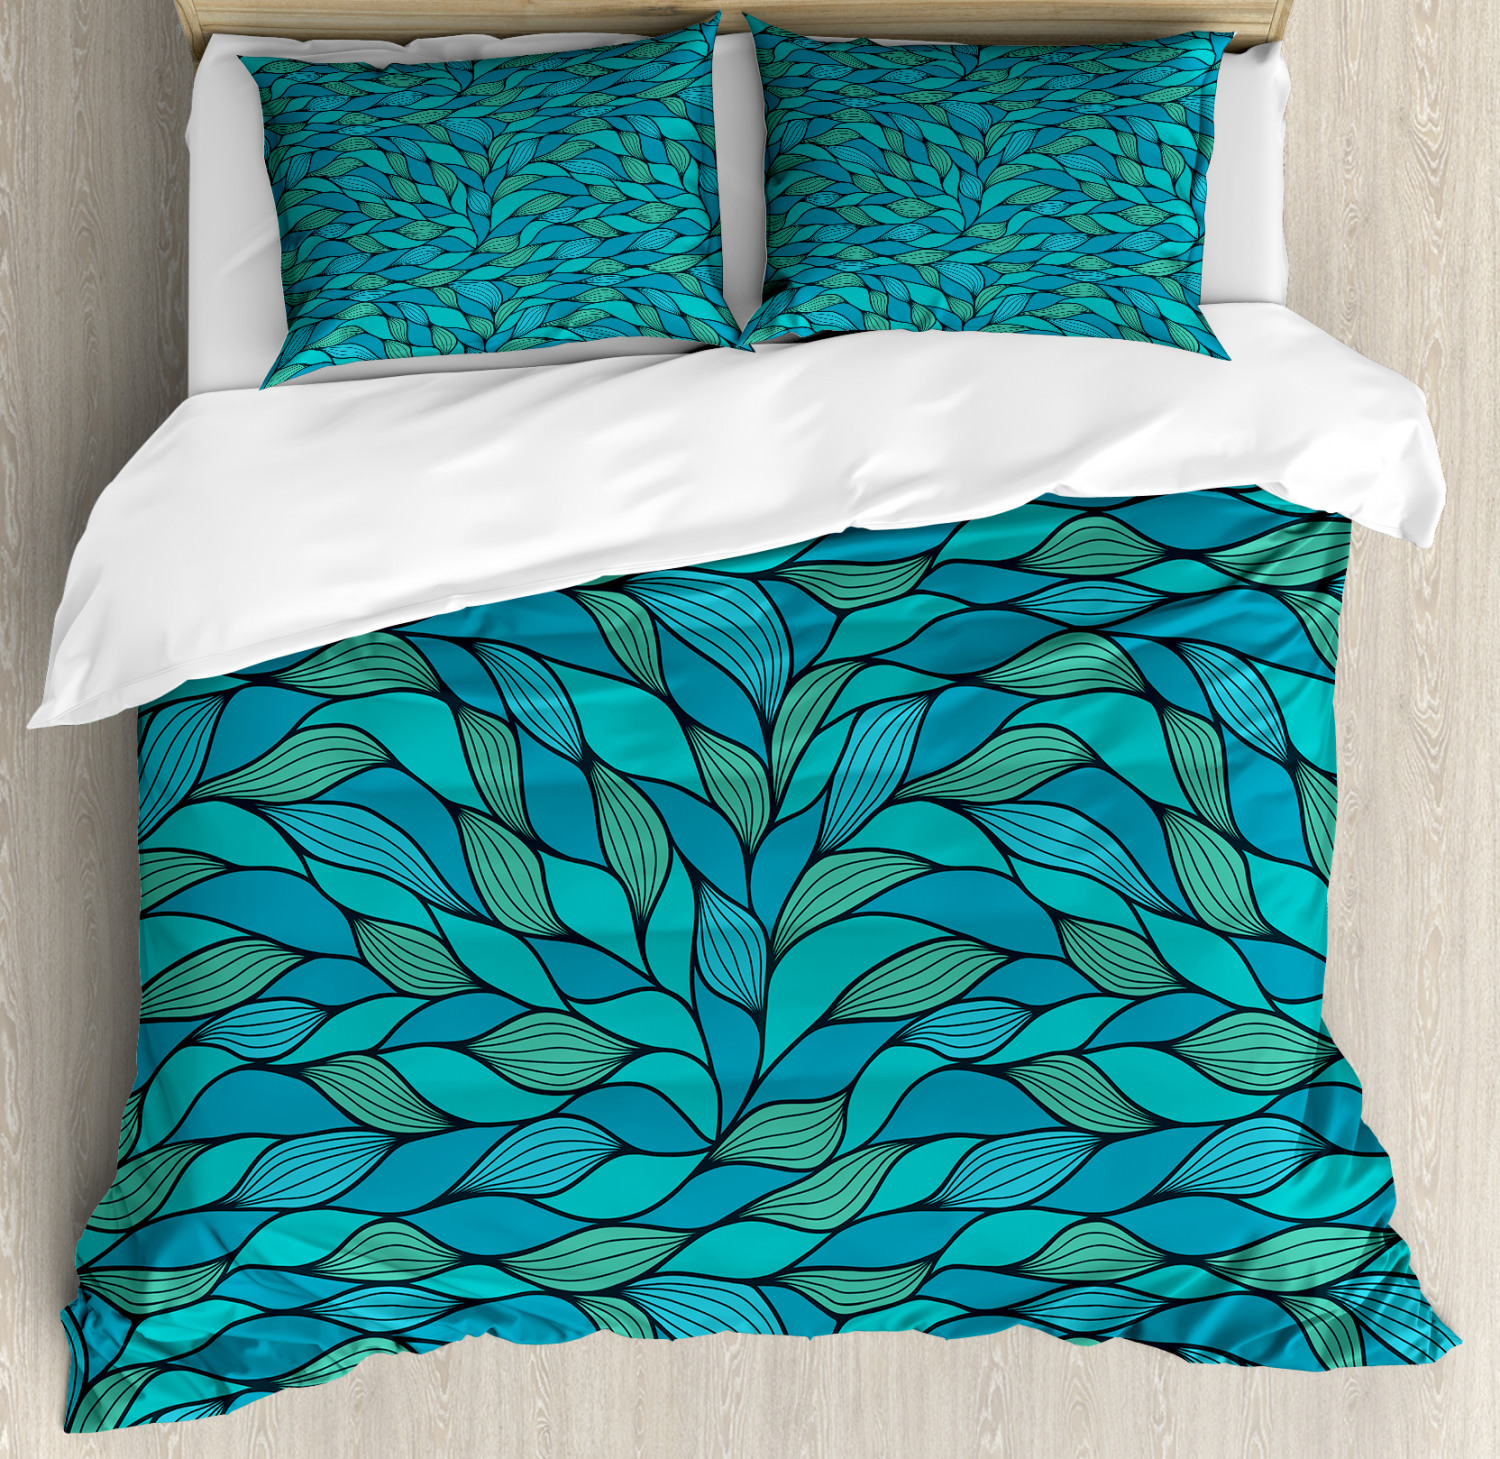 Teal Duvet Cover Set with Pillow Shams Abstract Wave Ocean Motif Print